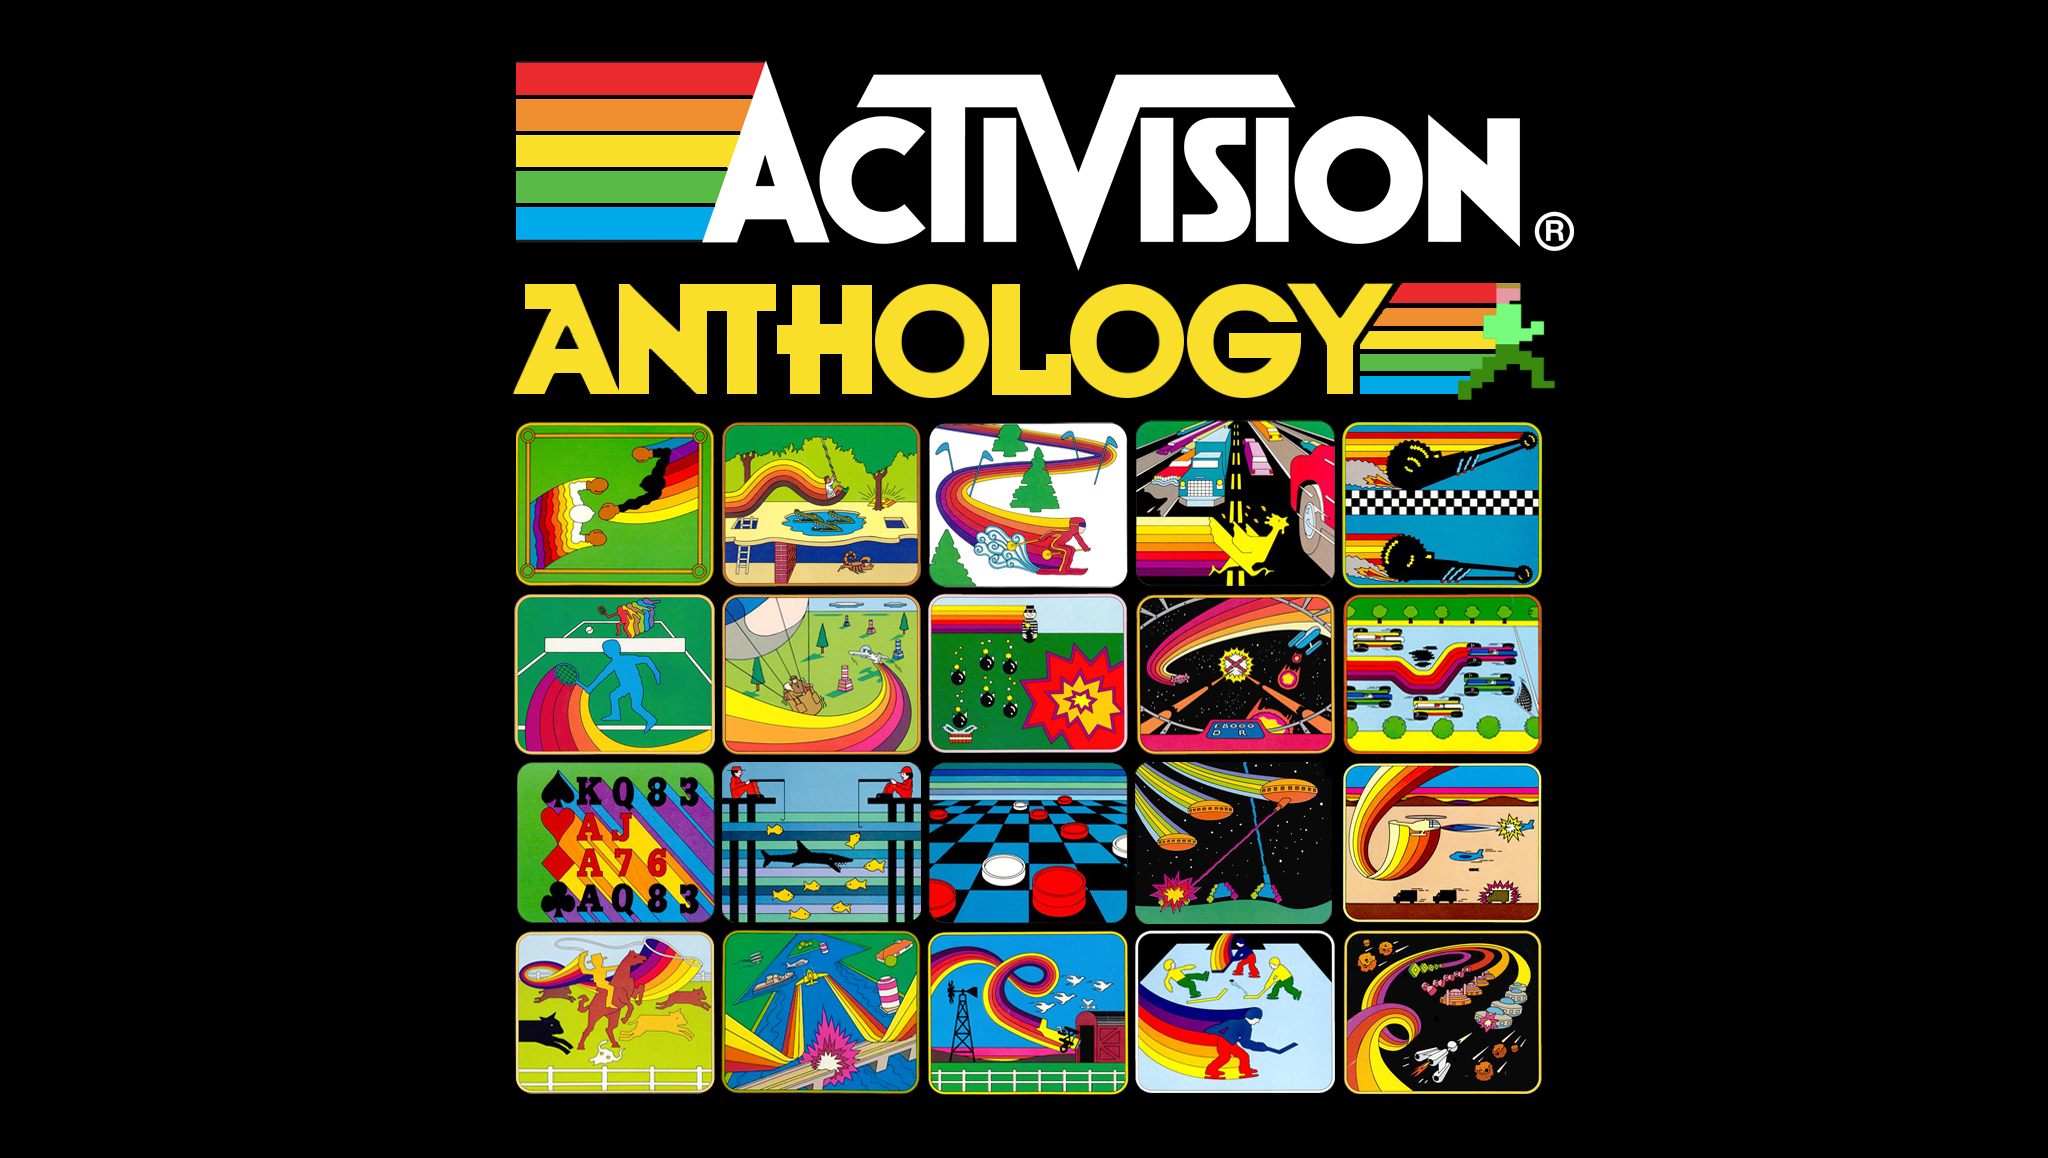 activision poster  Ant Farm: Activision Anthology: Launch Trailer